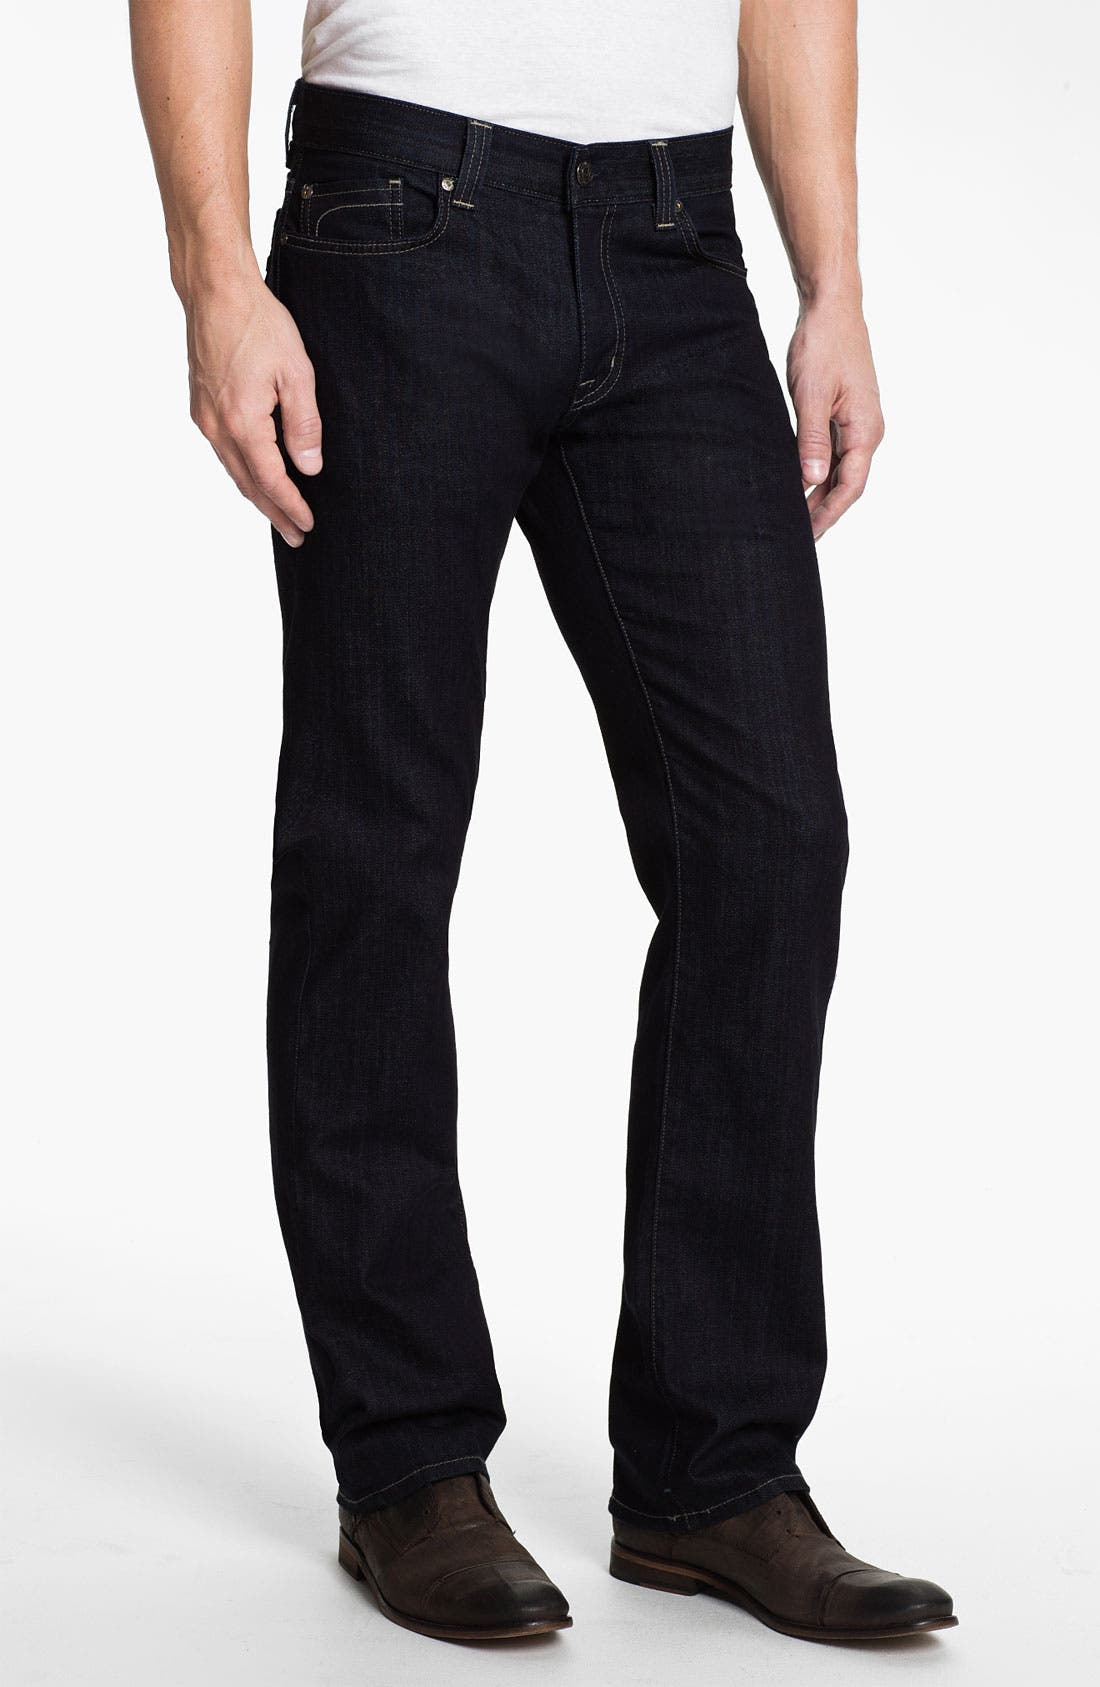 Main Image - Fidelity Denim '5011' Straight Leg Jeans (Pacific Rinse)